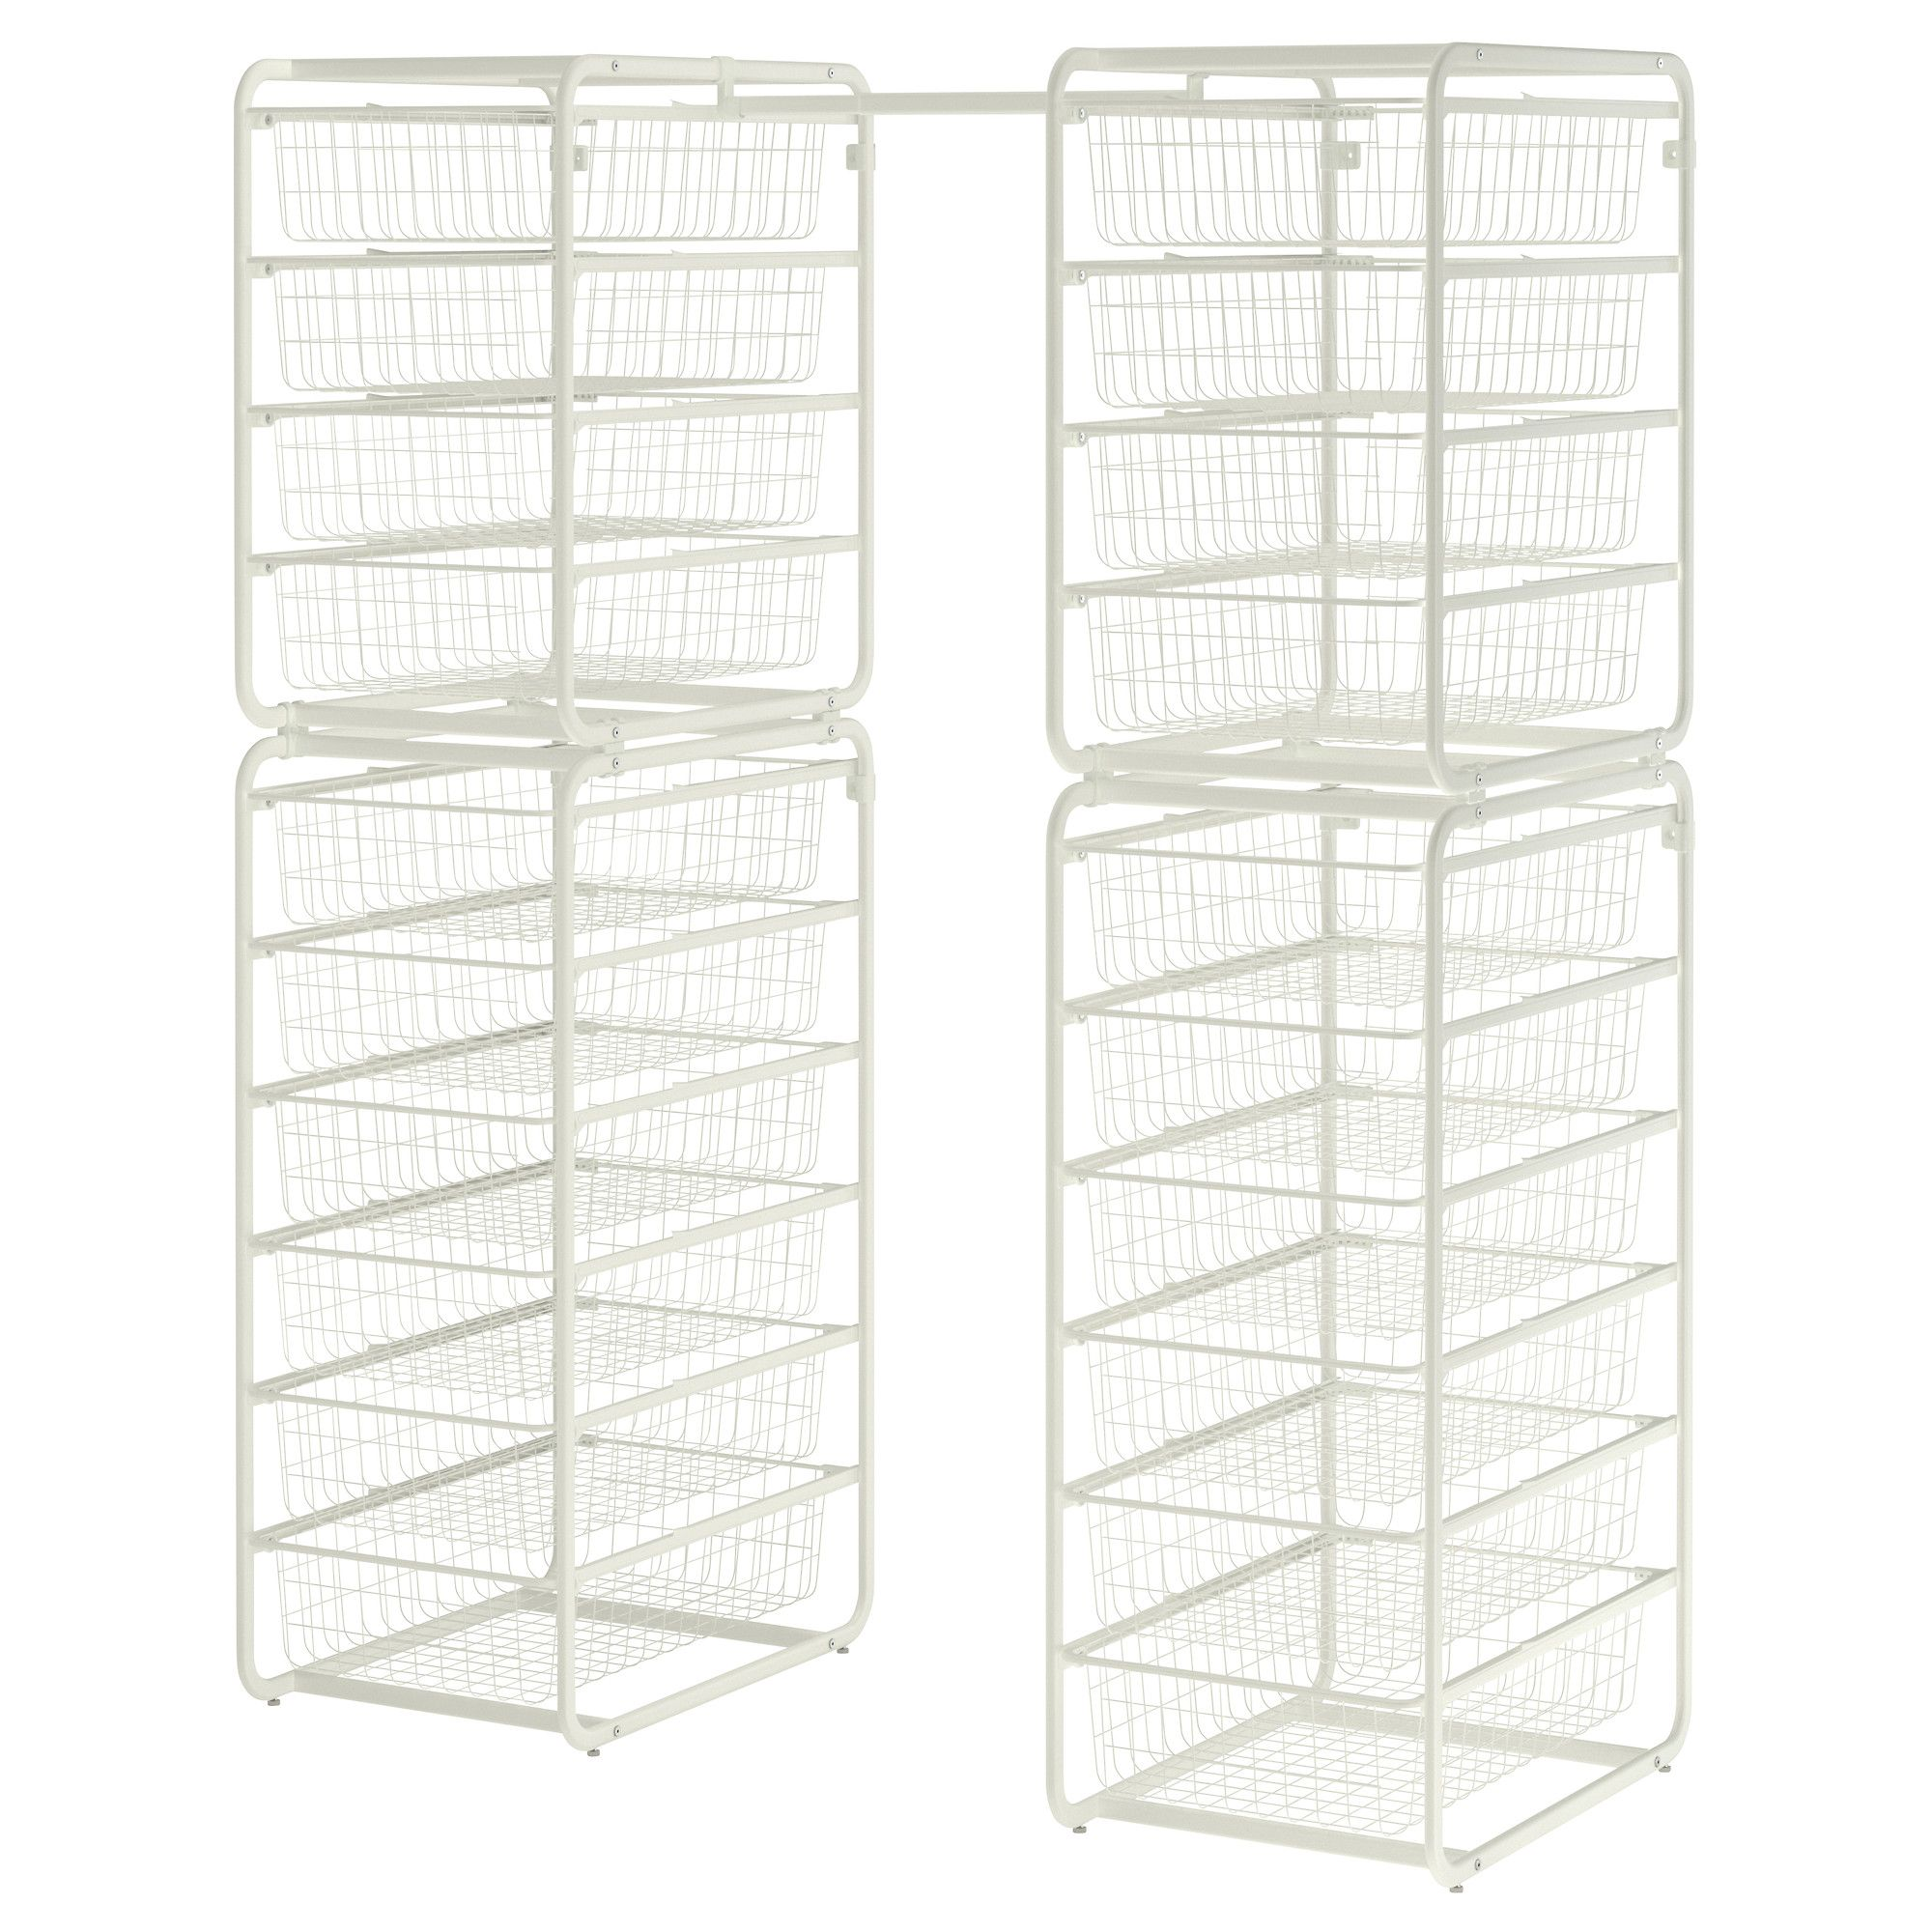 for more drawer space in the closet   algot frame  wire baskets  rod